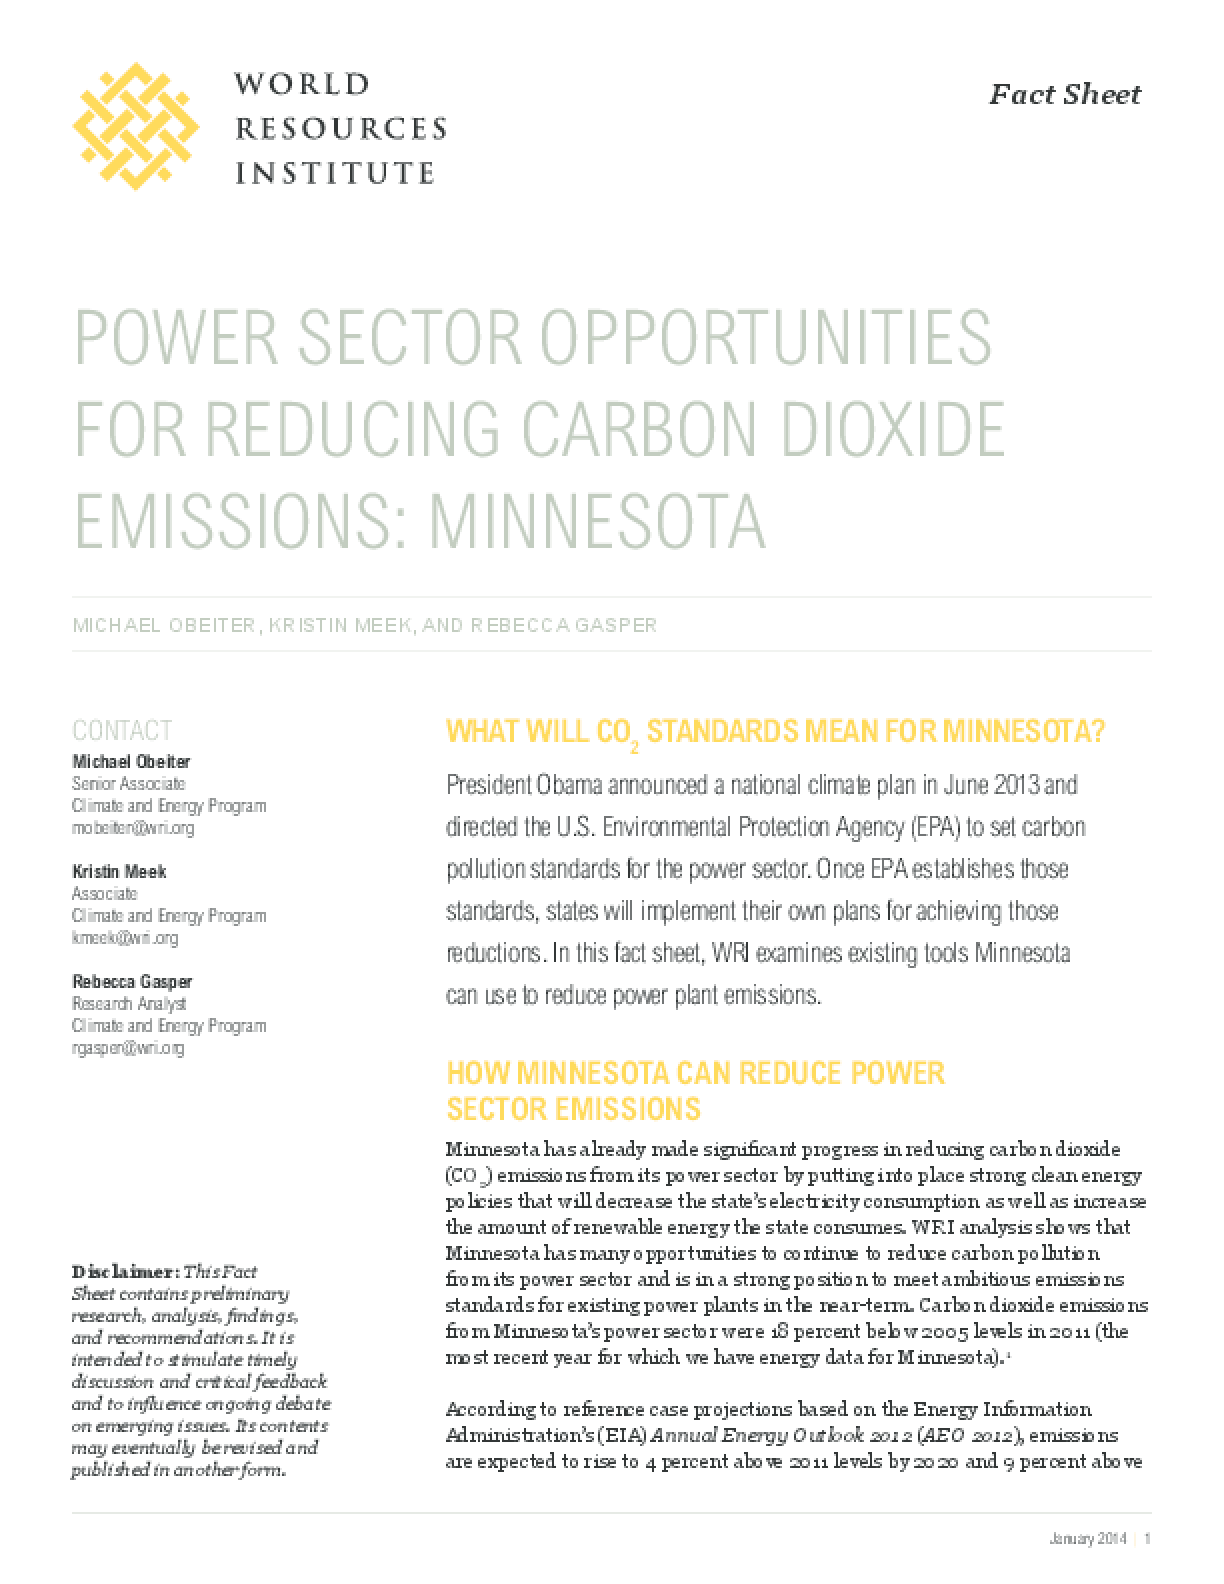 Power Sector Opportunities for Reducing Carbon Dioxide Emissions: Minnesota